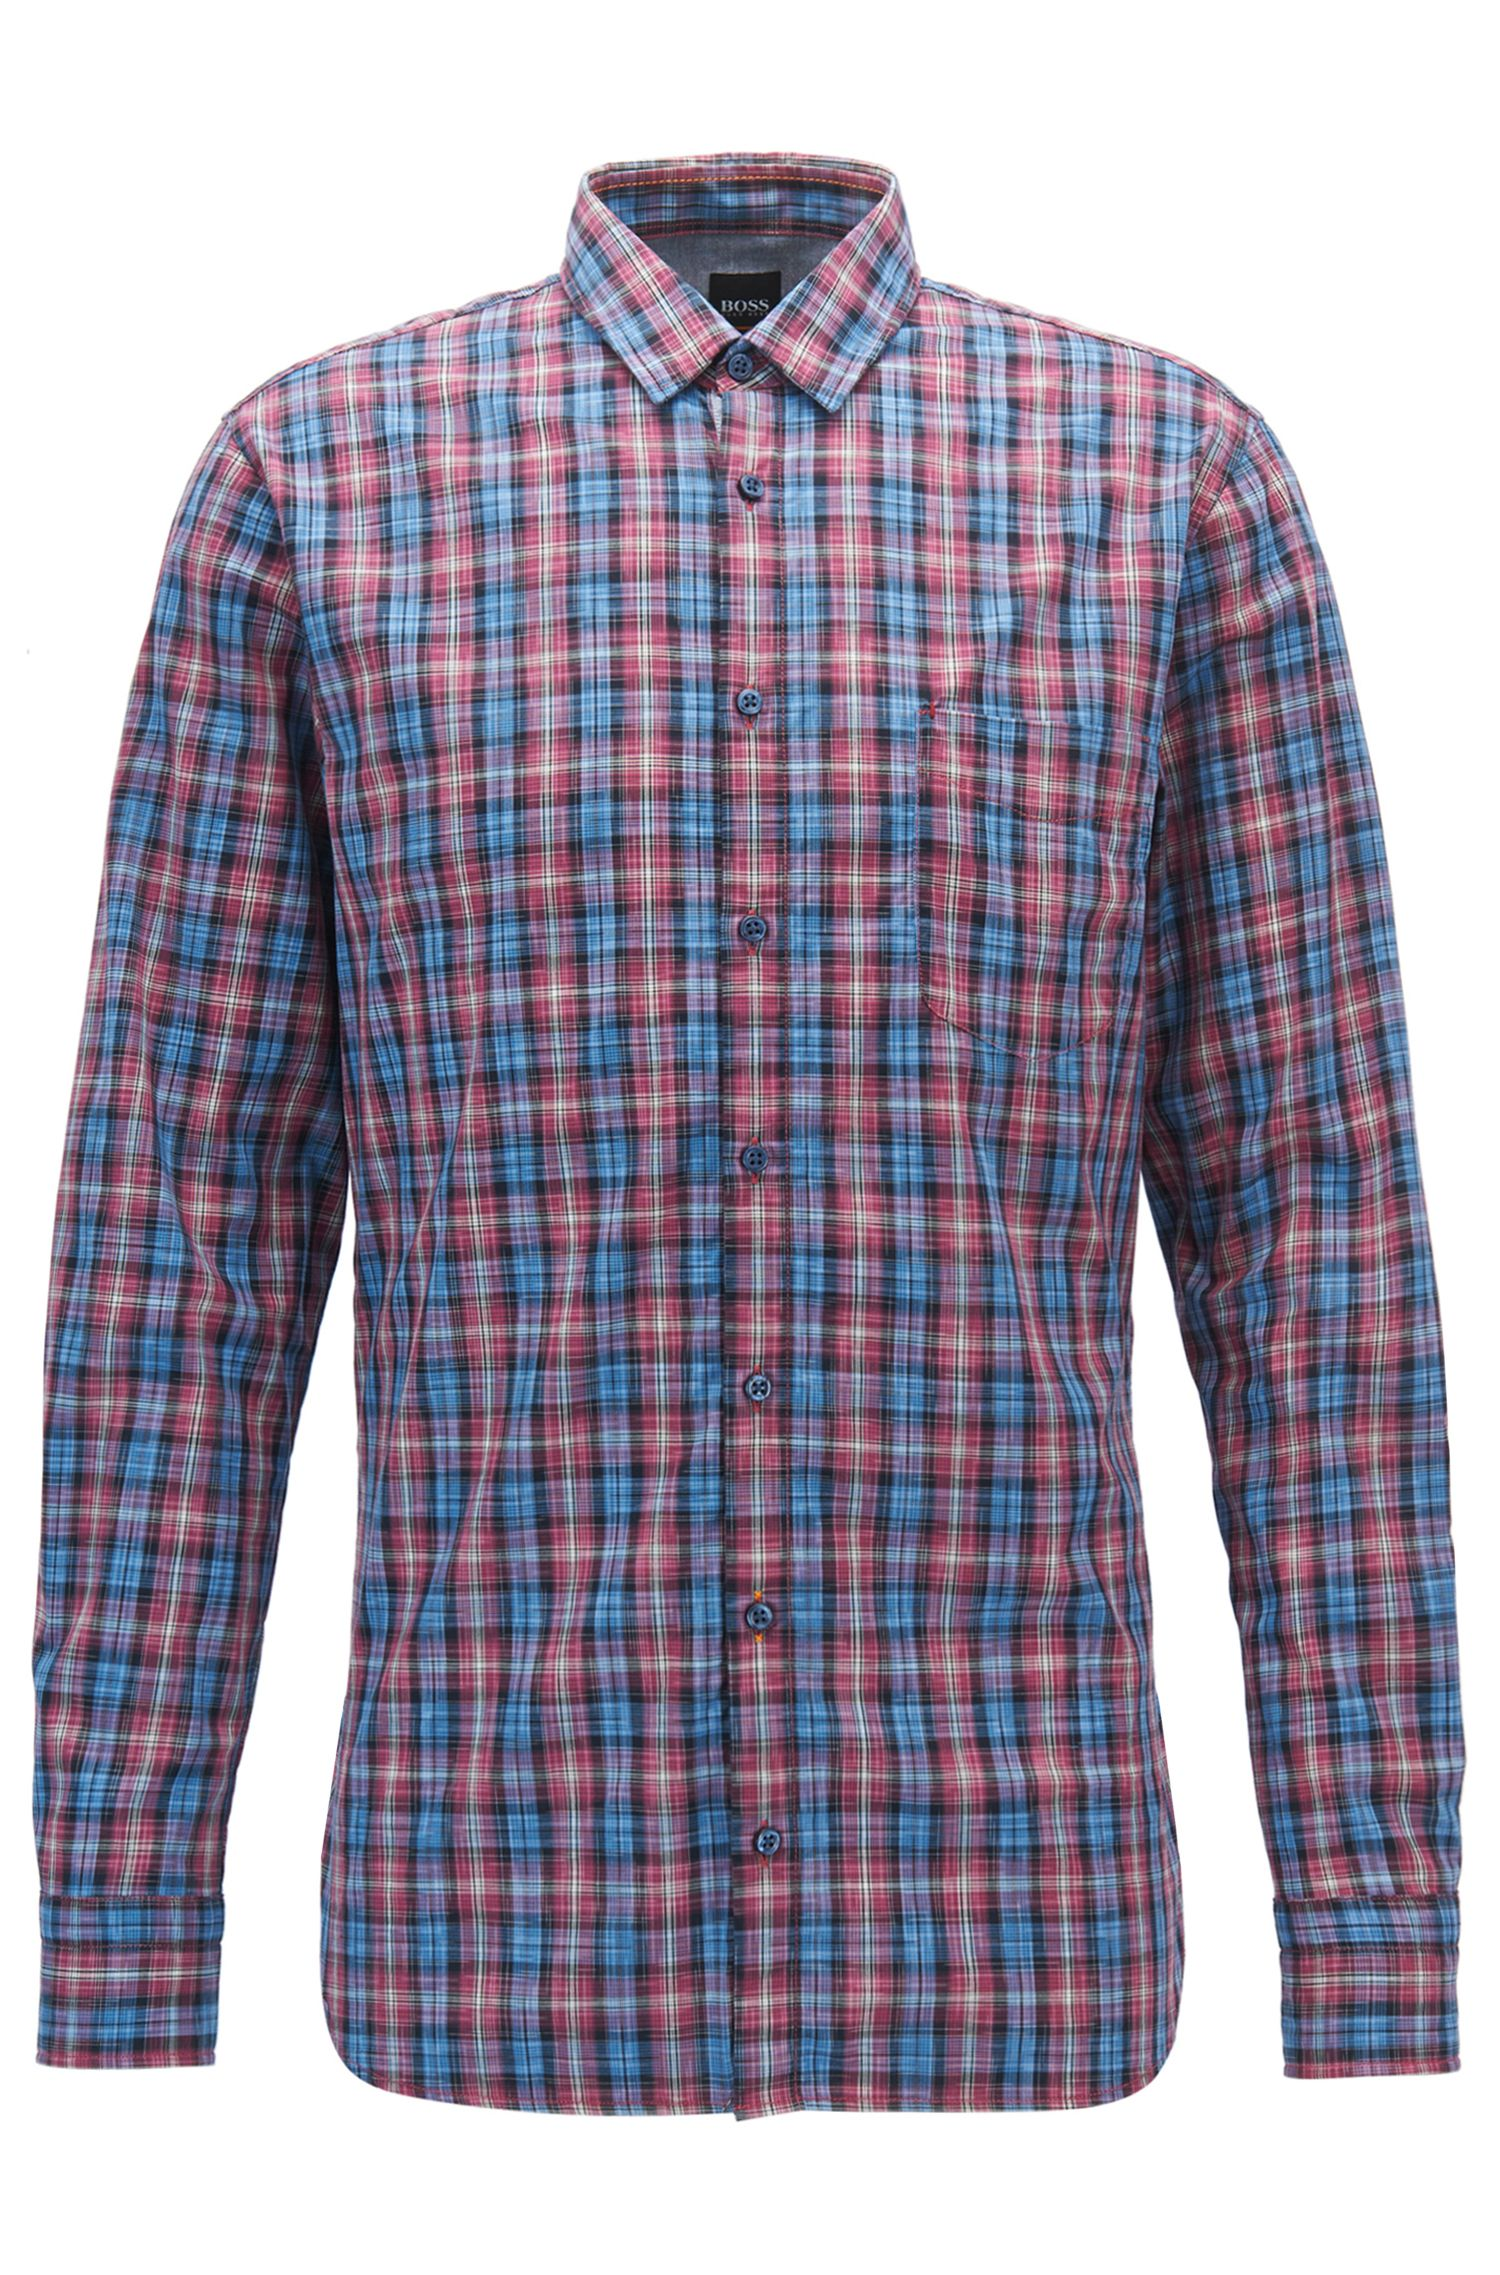 Chemise en coton Slim Fit à carreaux multicolores